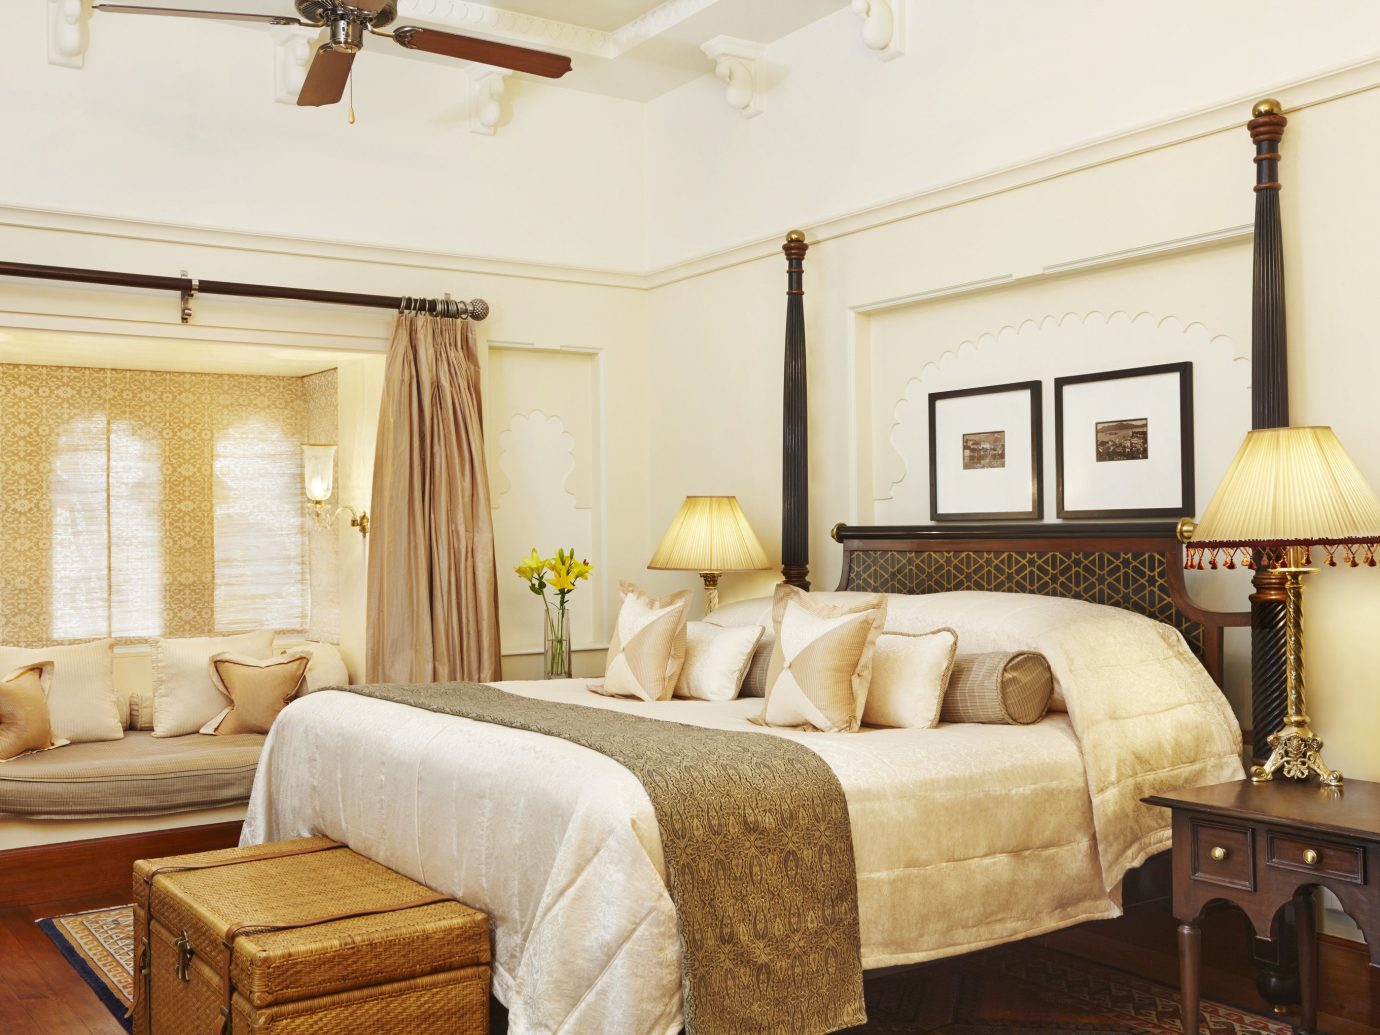 Hotels Luxury Travel indoor sofa room Suite interior design Bedroom ceiling bed frame real estate estate home furniture interior designer bed living room decorated